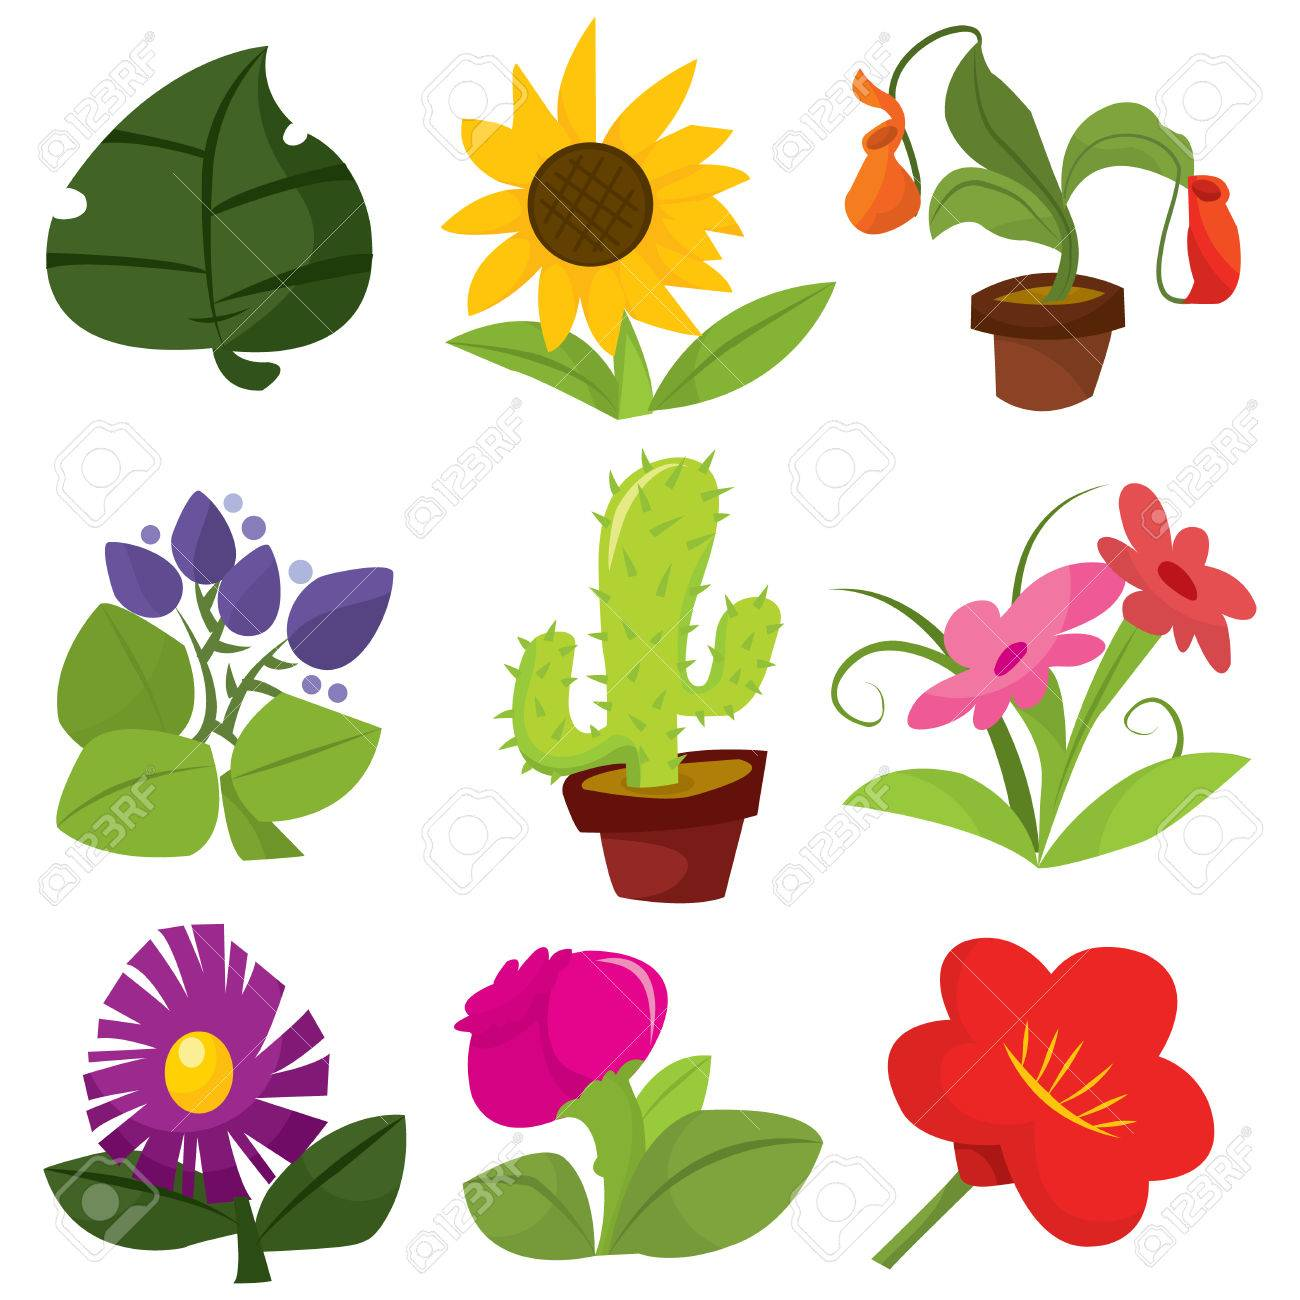 A Set Of Nine Different Cute Cartoon Vector Flowers And Plants Royalty Free Cliparts Vectors And Stock Illustration Image 39947981